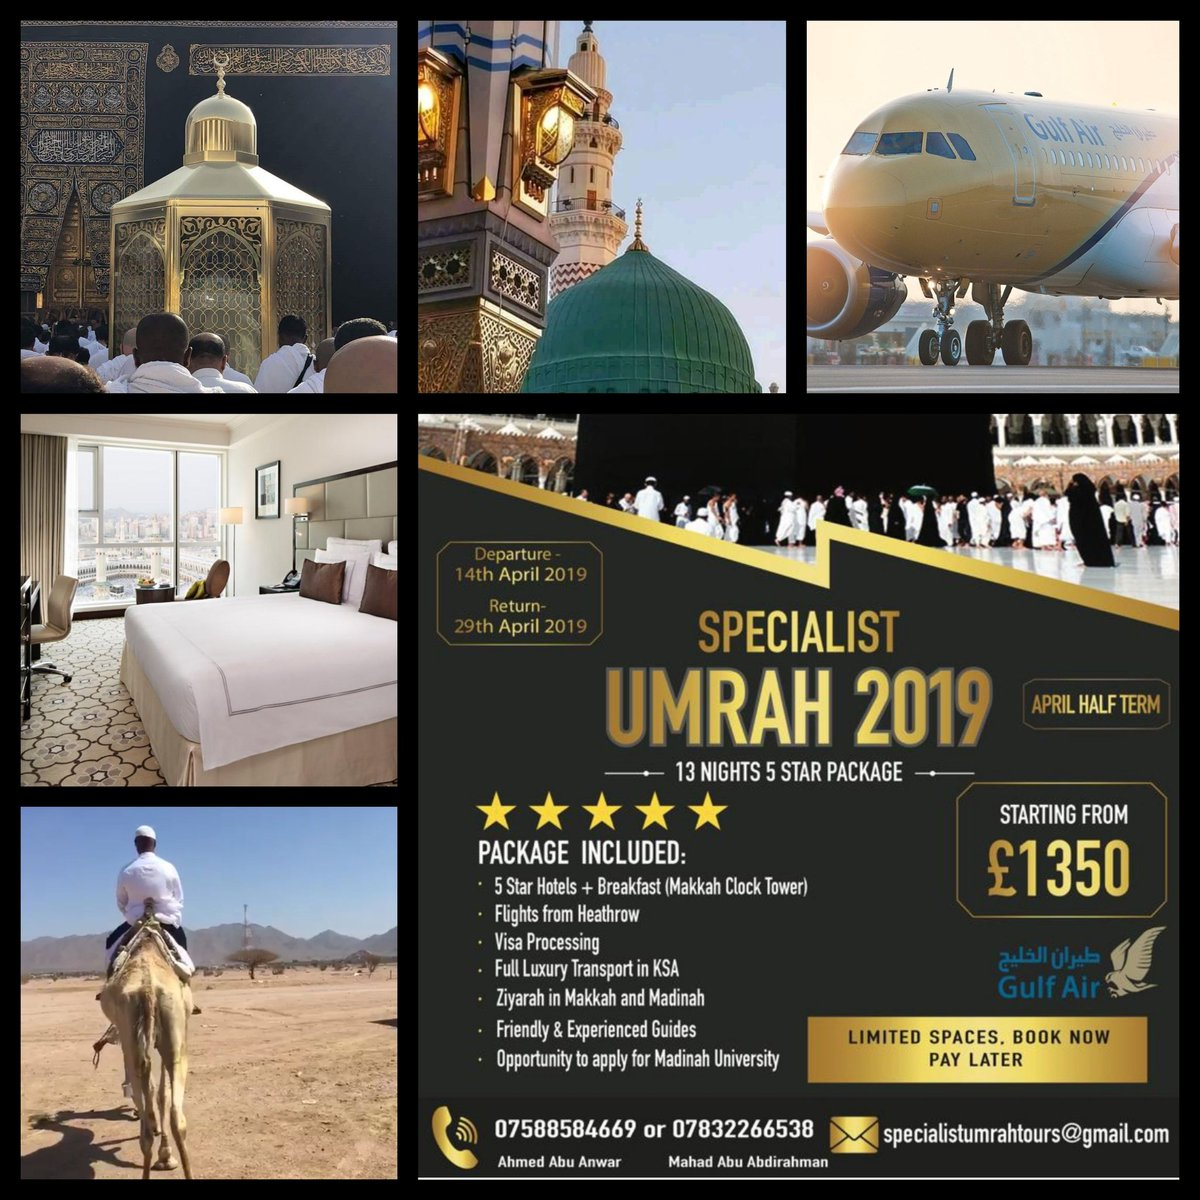 Going to Hajj: A Book of Transport (Beginning to Learn 4)